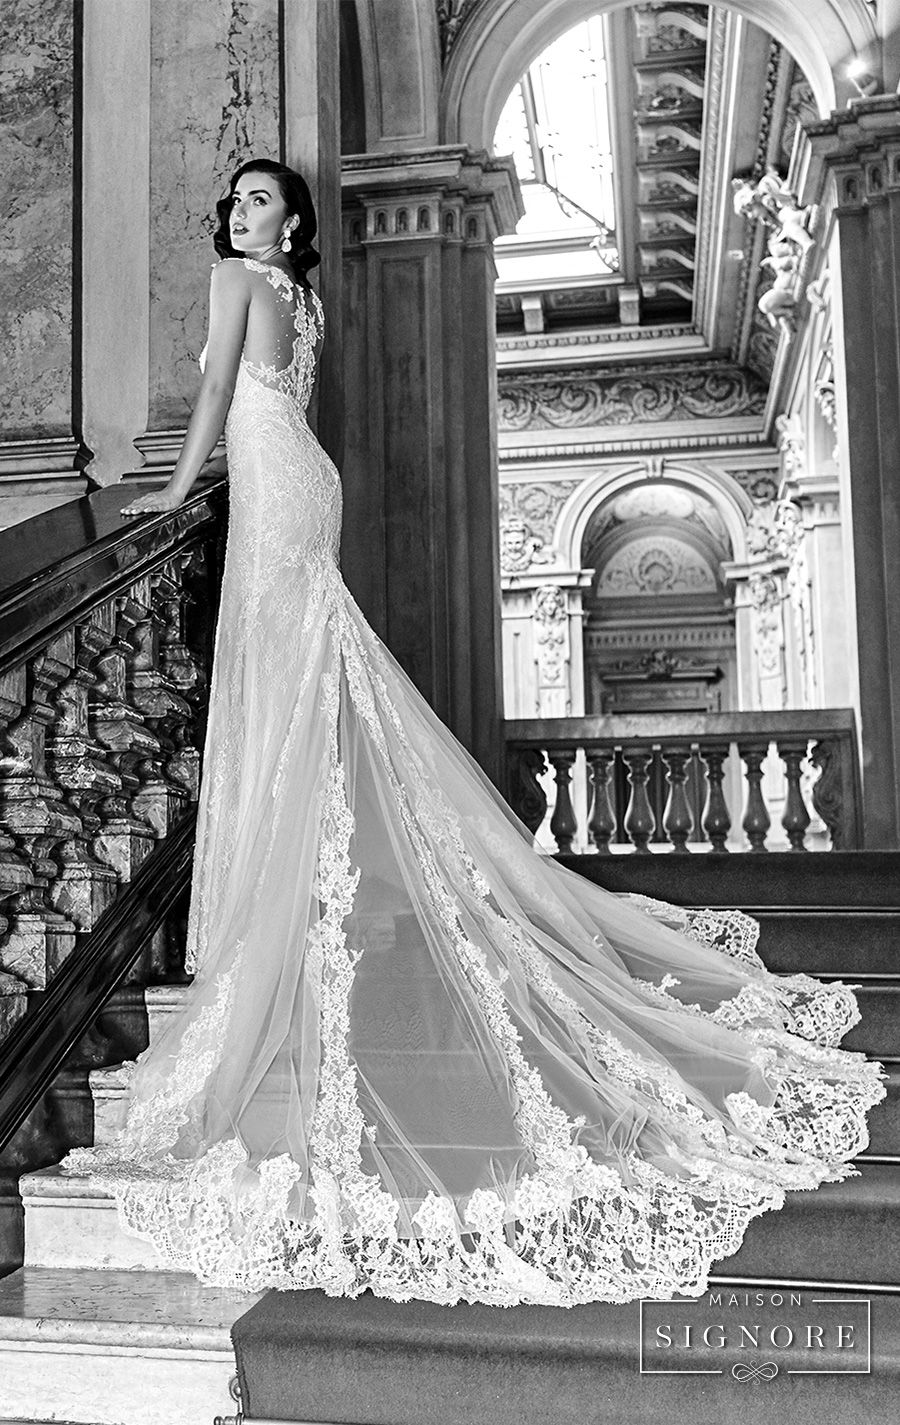 Maison Signore Exquisite Made in Italy Wedding Dresses — Now ...